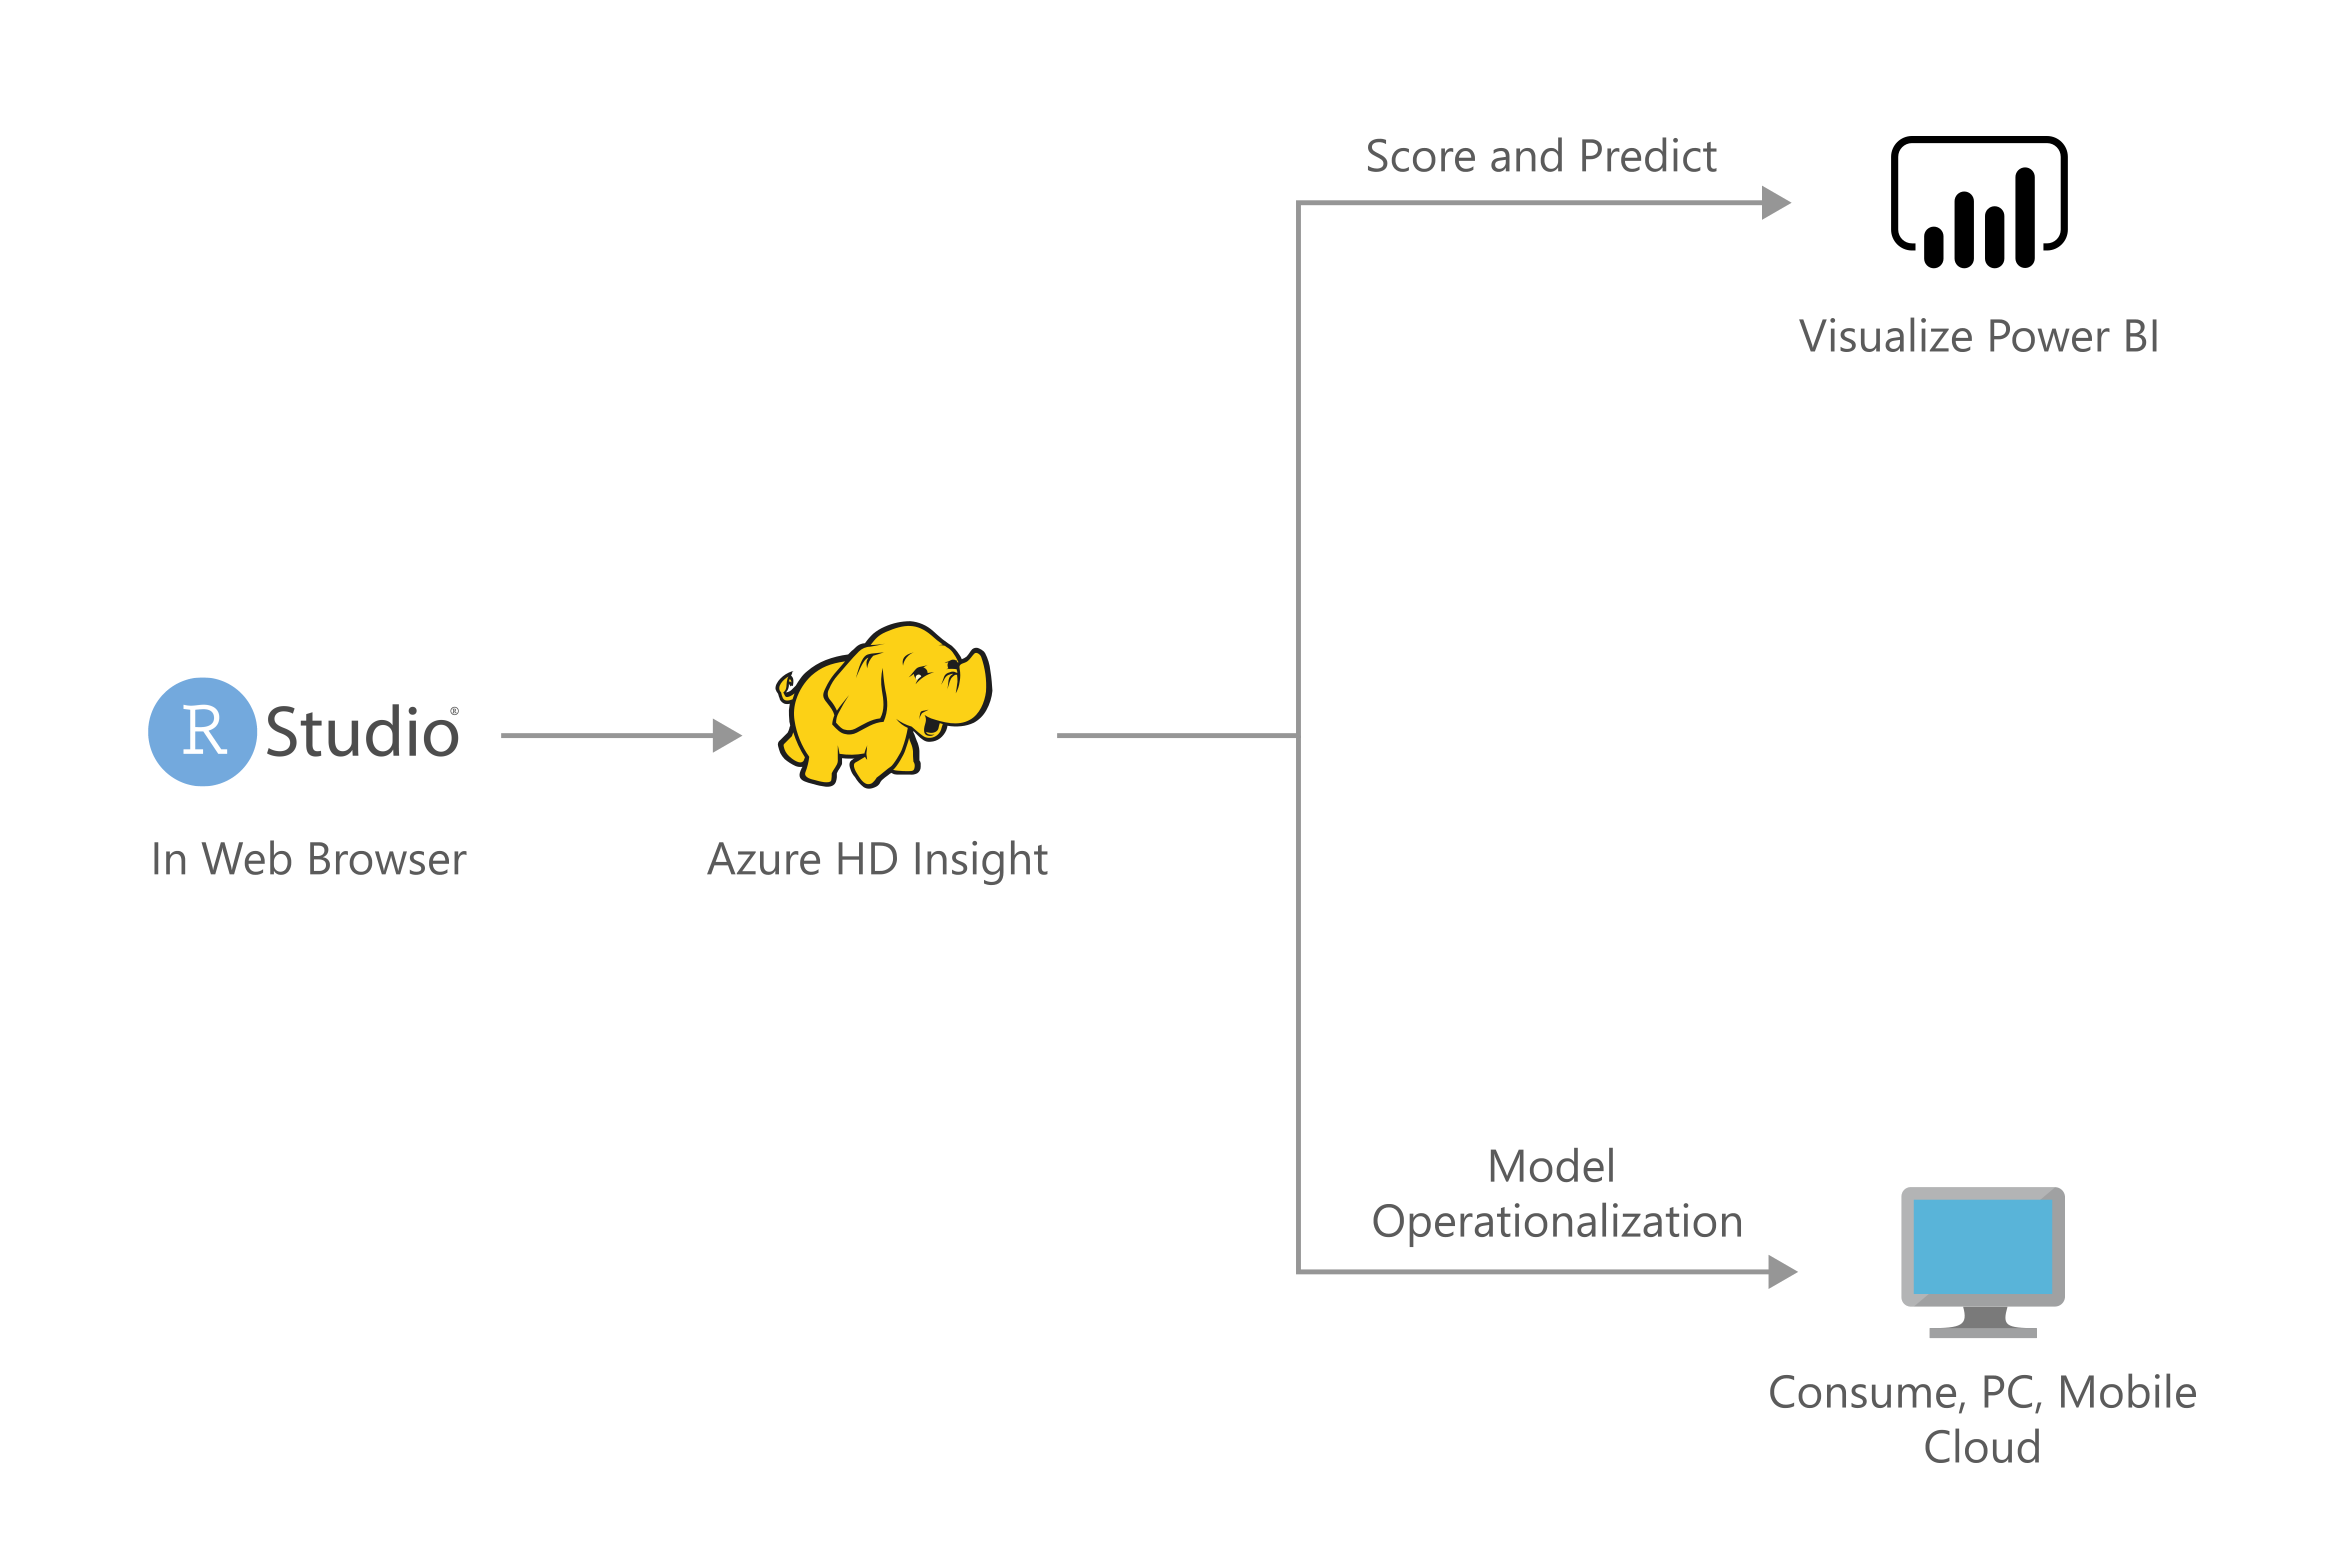 Thumbnail of Campaign Optimization with Azure HDInsight Spark Clusters Architectural Diagram.